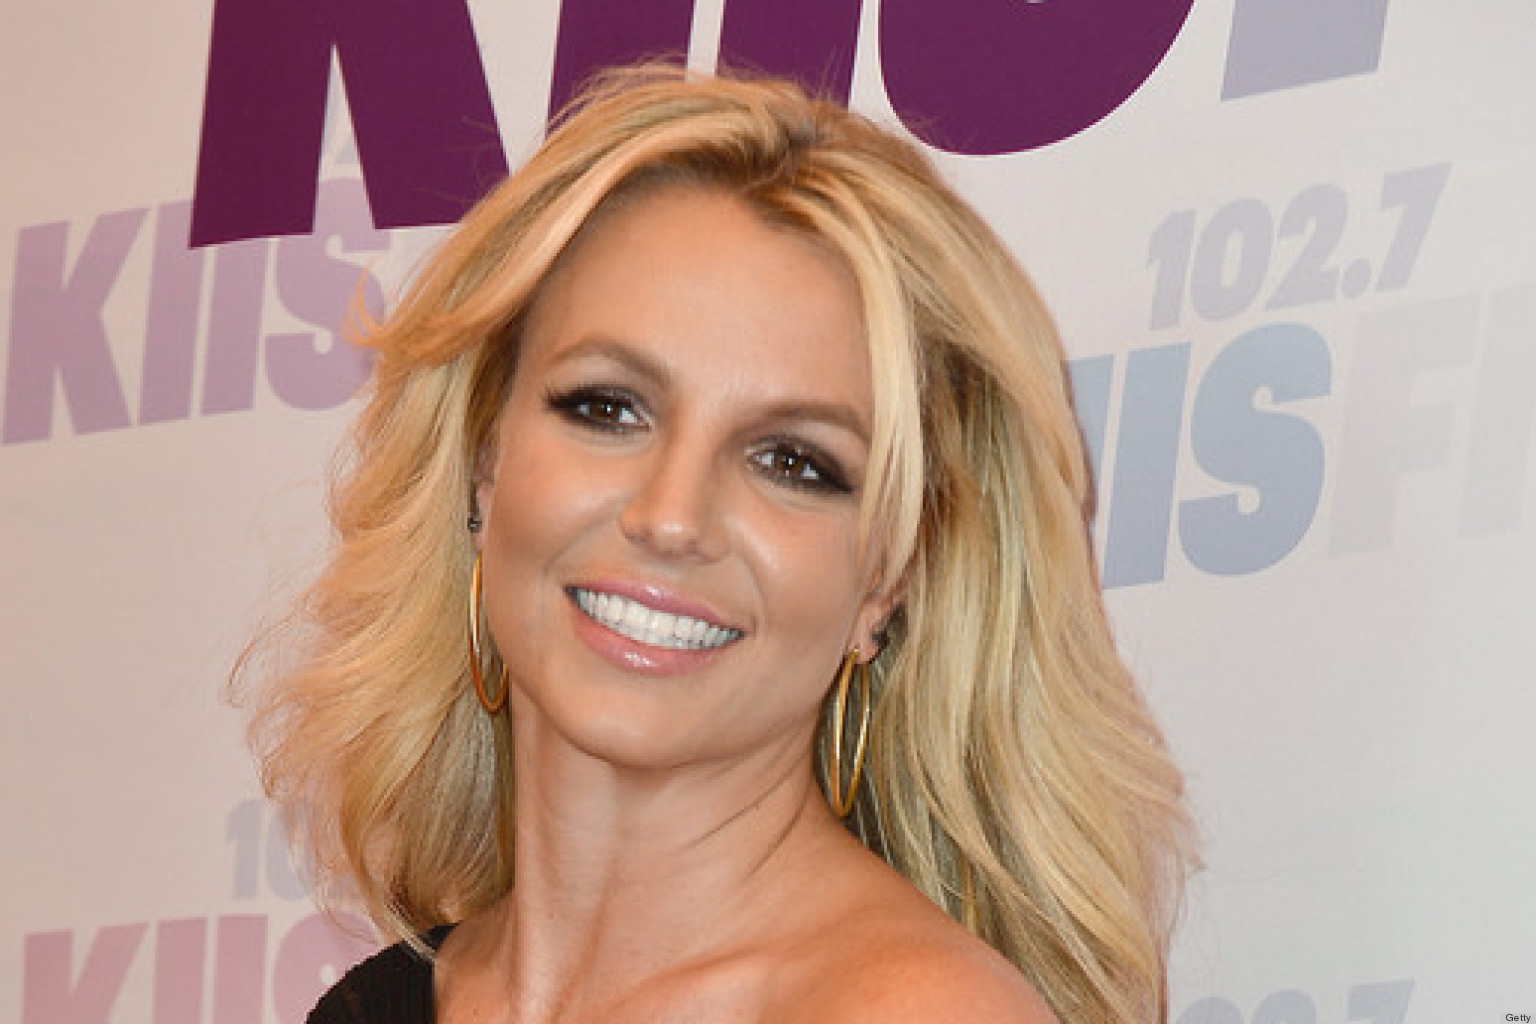 PHOTOS: Britney Gives The LBD A Sexy Update